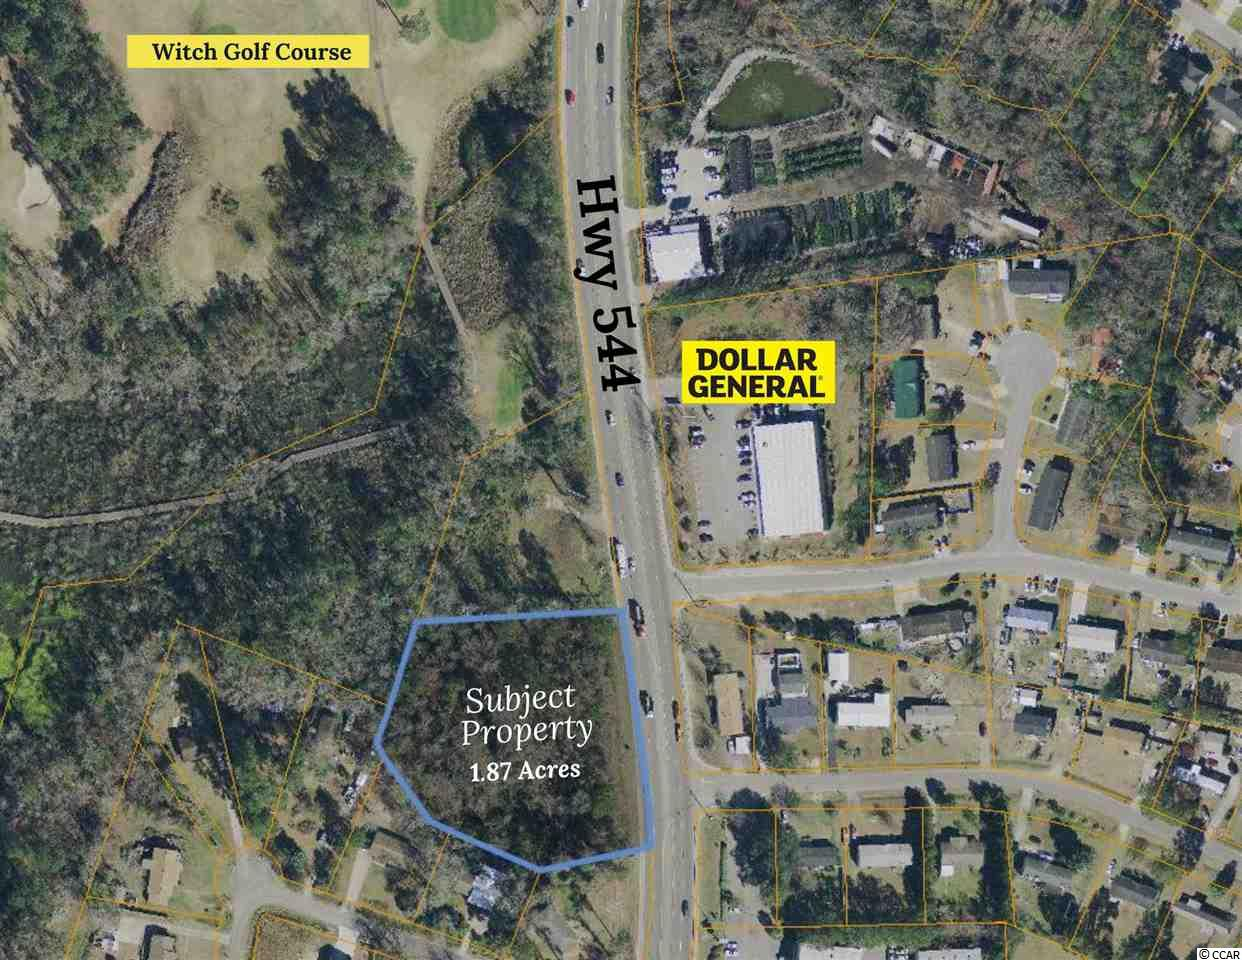 This property is almost 2.0 acres in size and is located between the Socastee Community and Coastal Carolina University. There is a lot of growth potential in this area especially with the continued growth of the College and the Technical College. The property has over 300 ft of road frontage and is zoned RE3 which allows a lot of commercial uses.